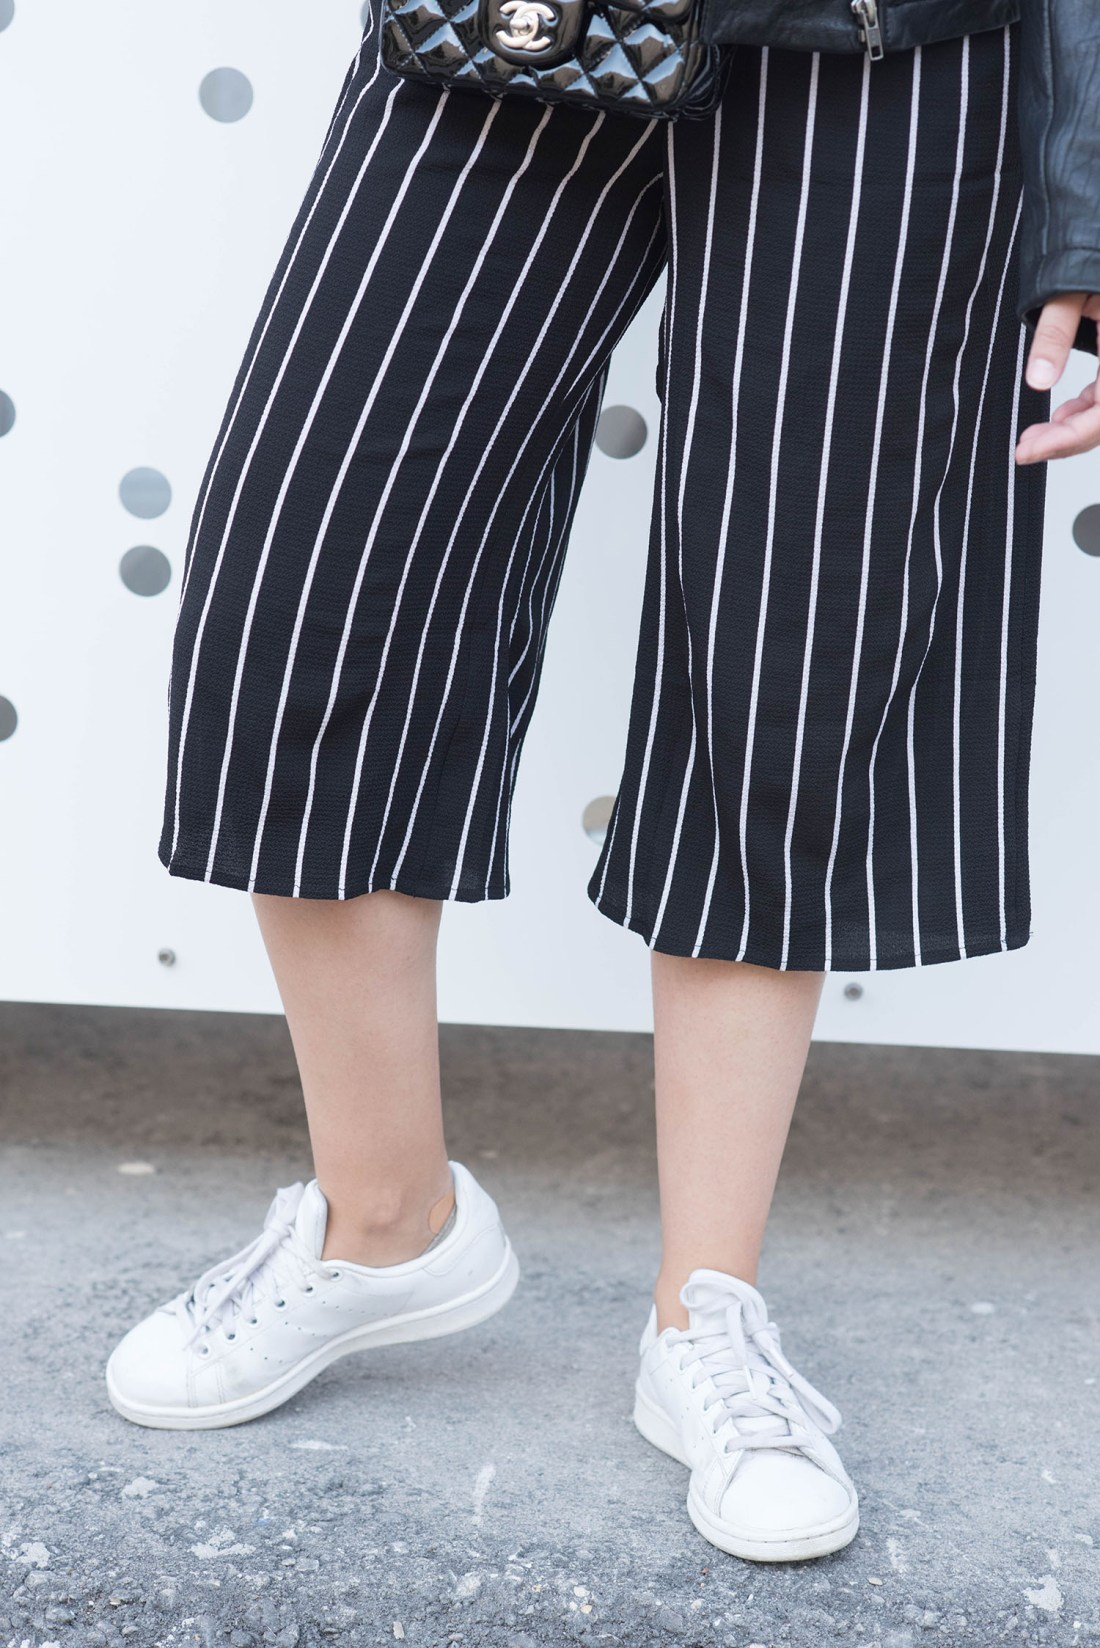 Outfit details on Winnipeg fashion blogger Cee Fardoe of Coco & Vera, wearing a Missy Empire striped jumpsuit, Adidas Stan Smith sneakers and black Chanel extra mini handbag